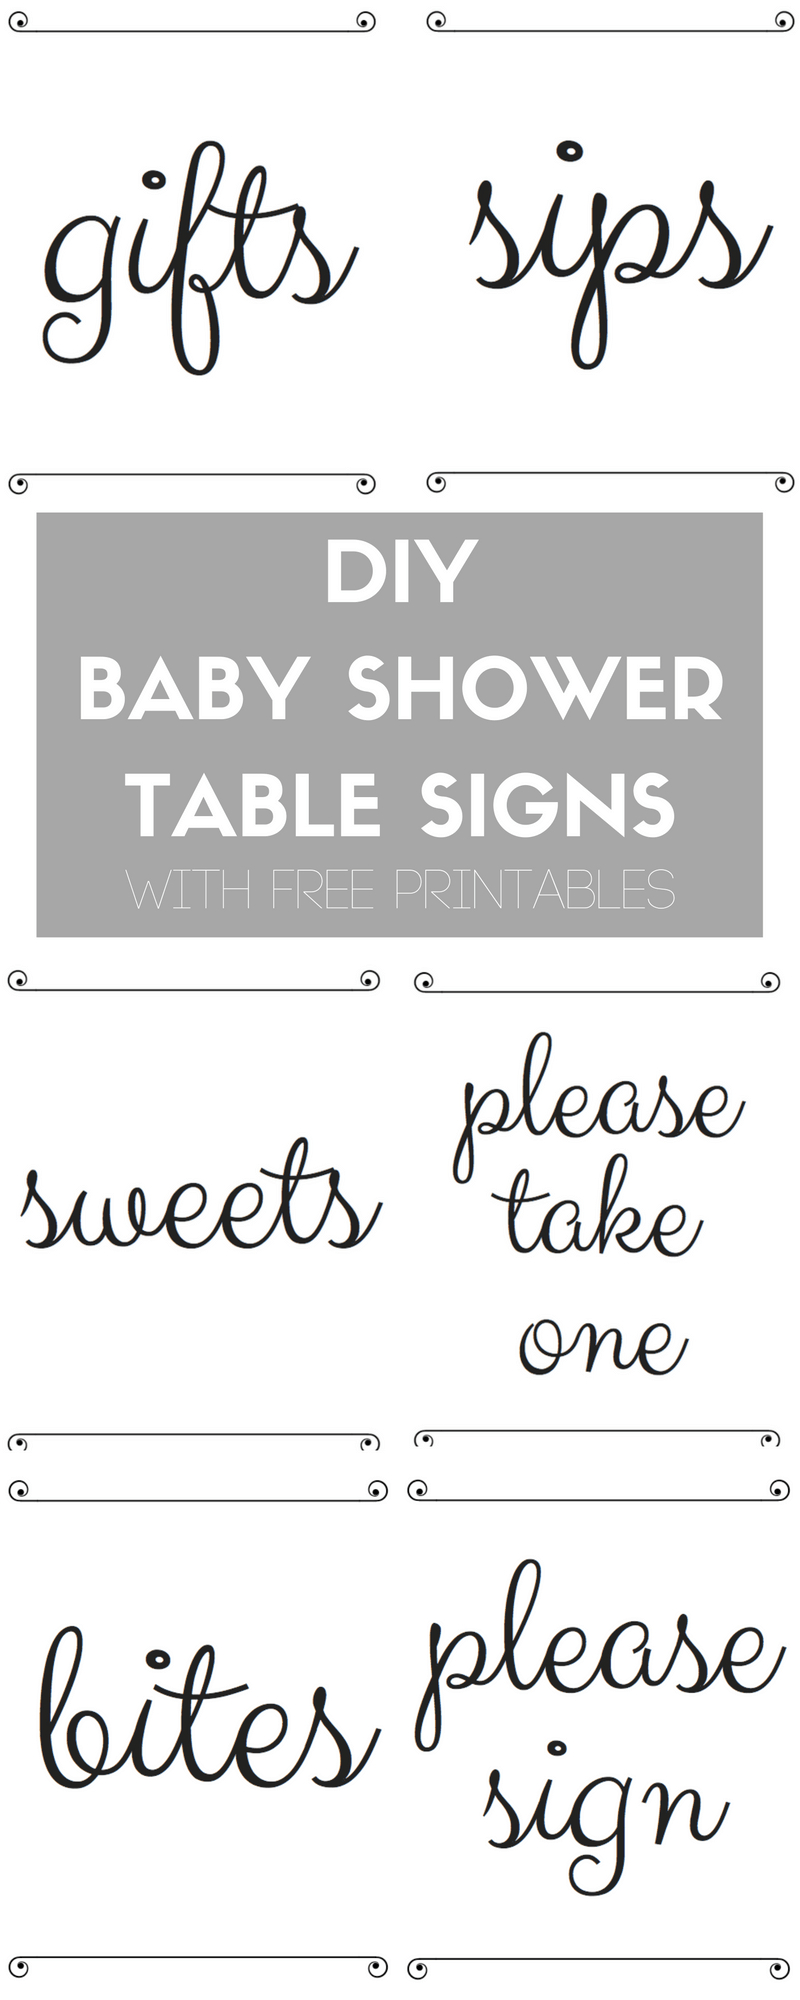 Diy Baby Shower Table Signs With Free Printables | Best Of The Blog - Free Printable Diaper Raffle Sign